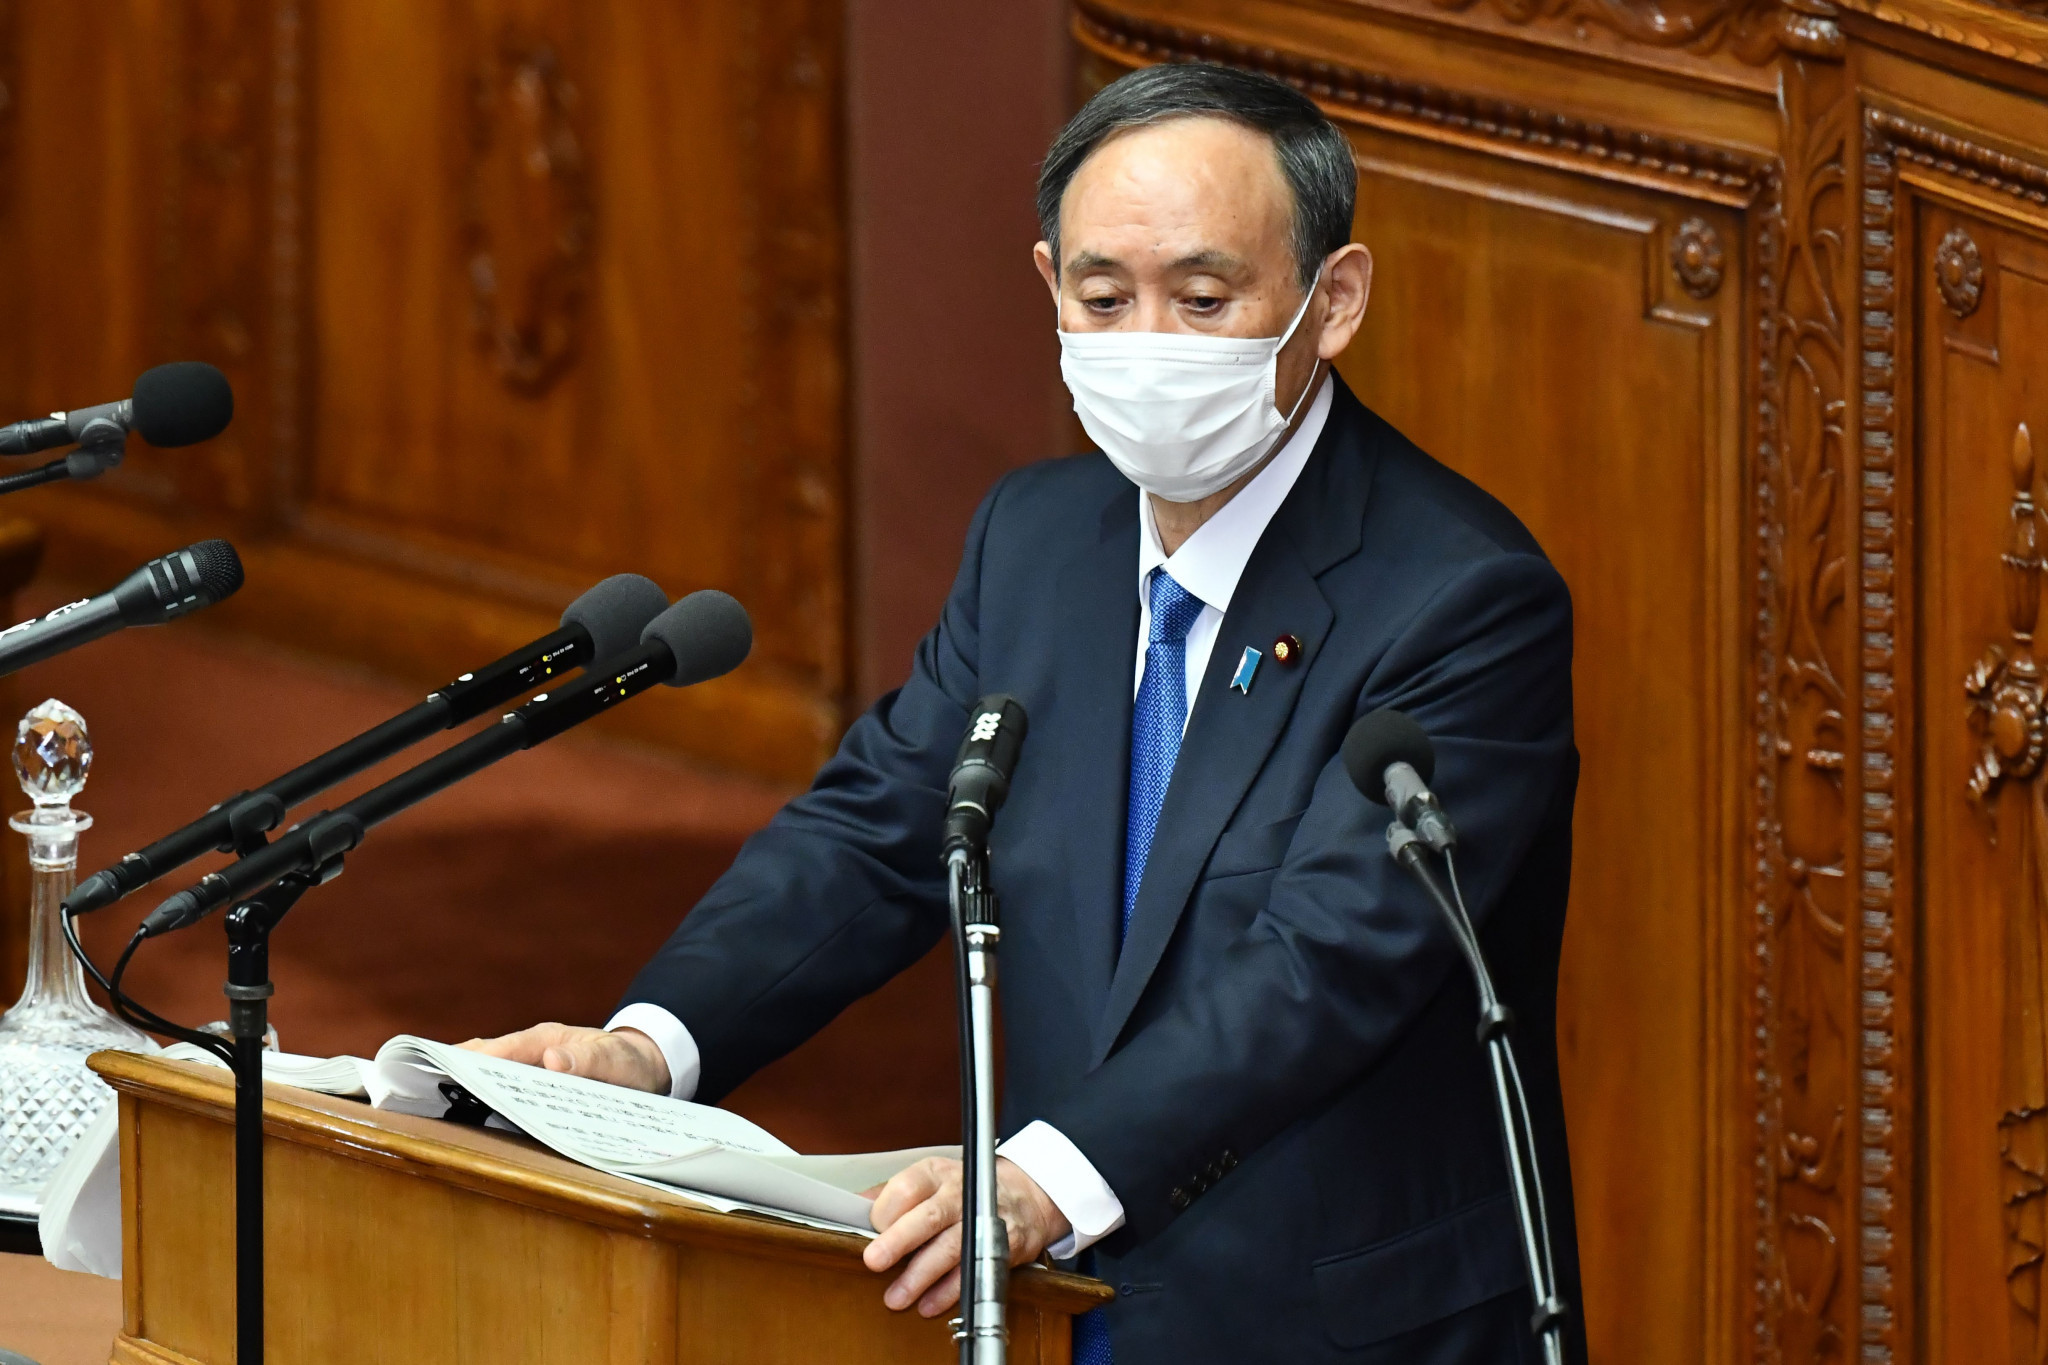 Japanese Prime Minister Yoshihide Suga said the Government will take effective measures to curb the rise in coronavirus cases ©Getty Images